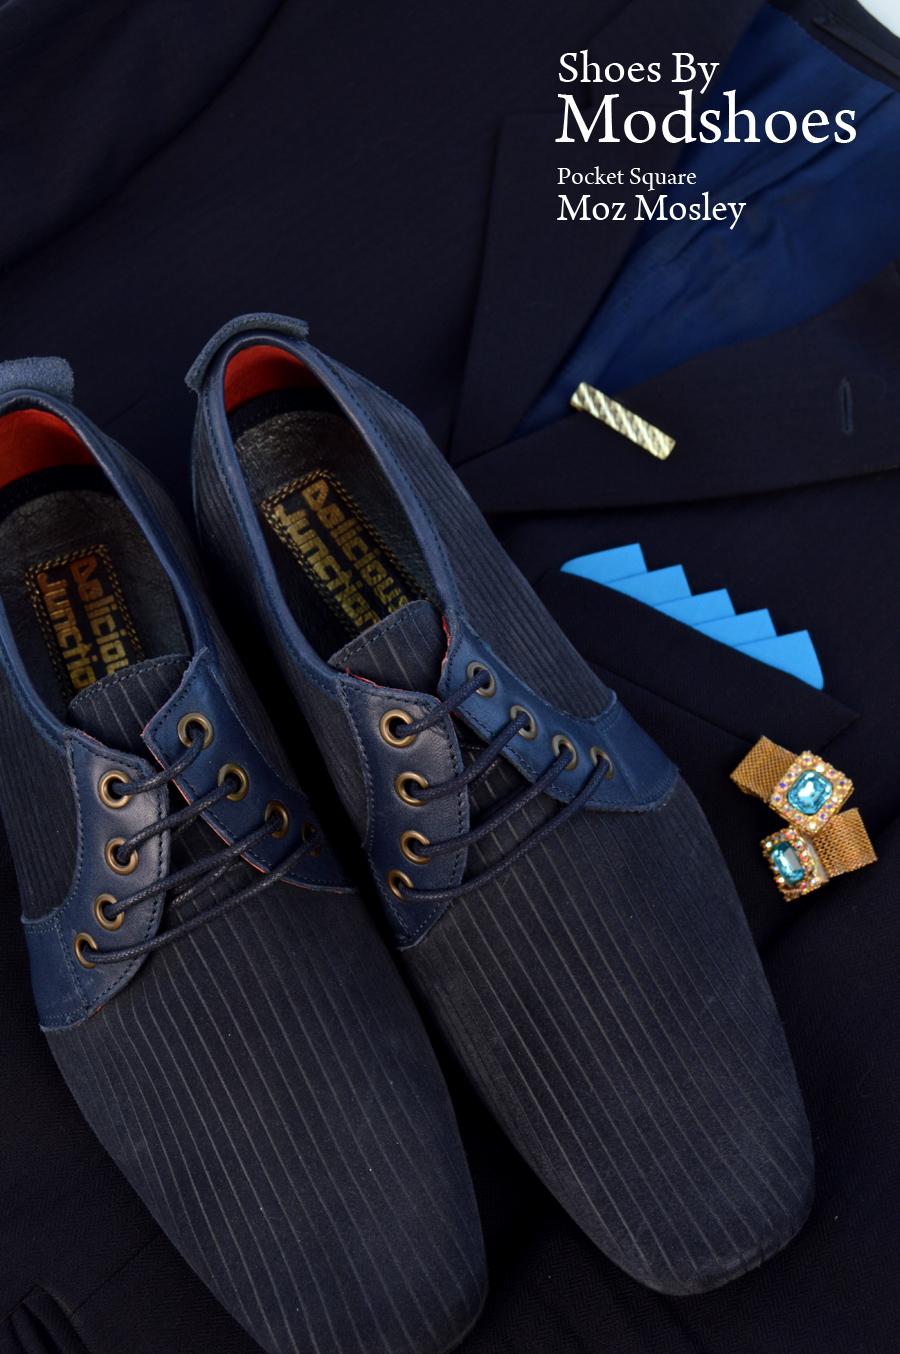 modshoes-blue-corded-shoes